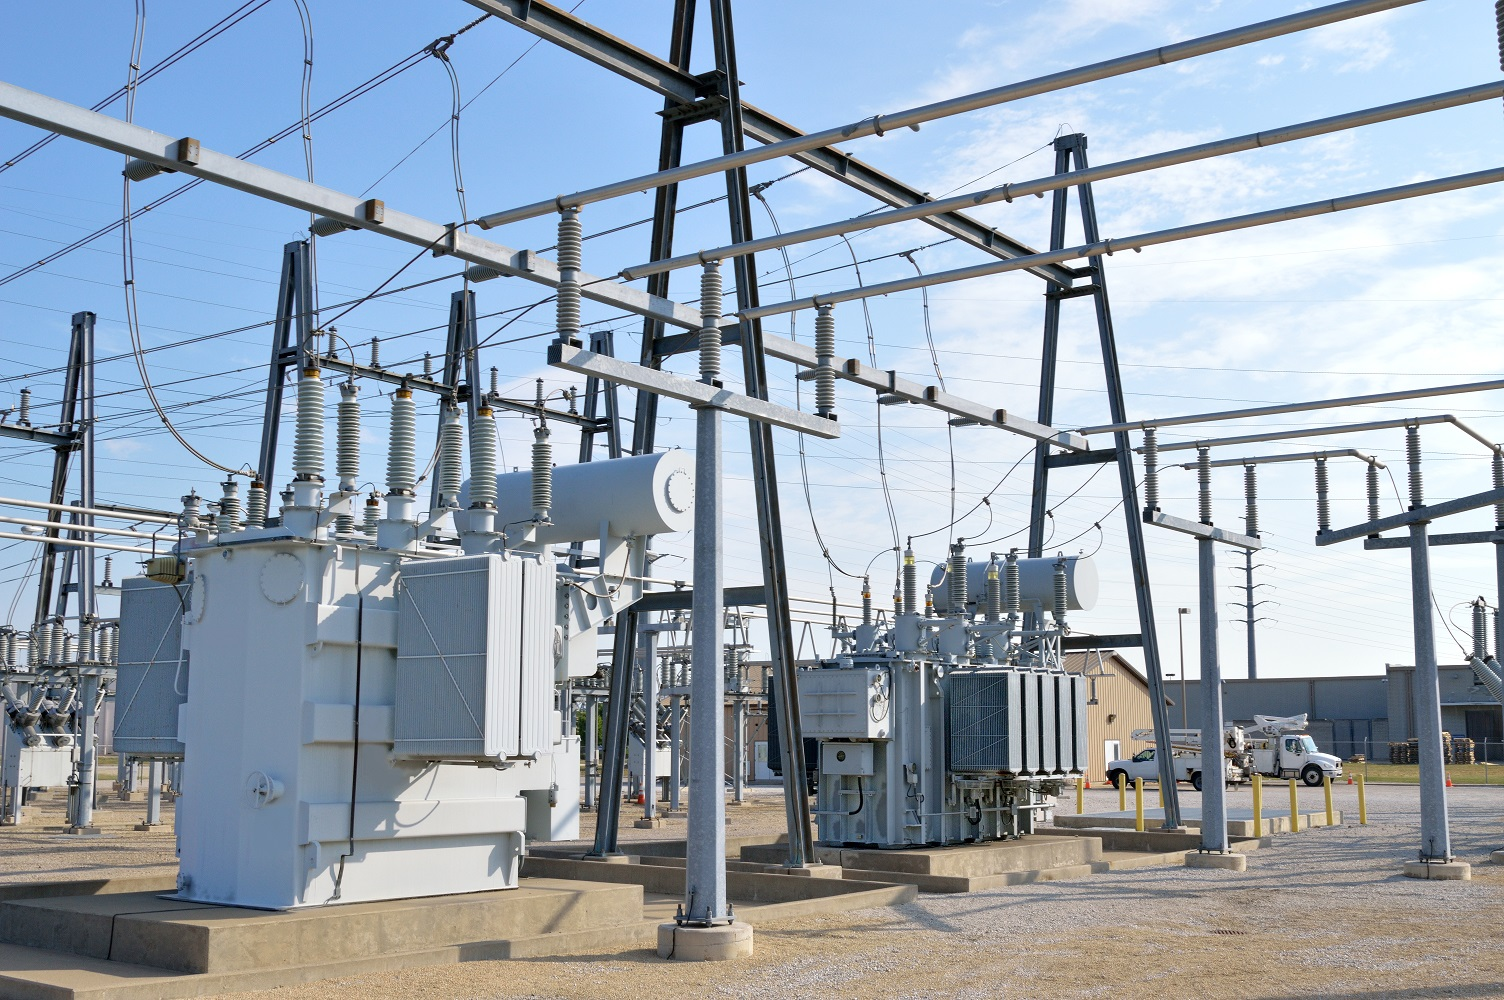 OLTC Monitoring on Power Transformers